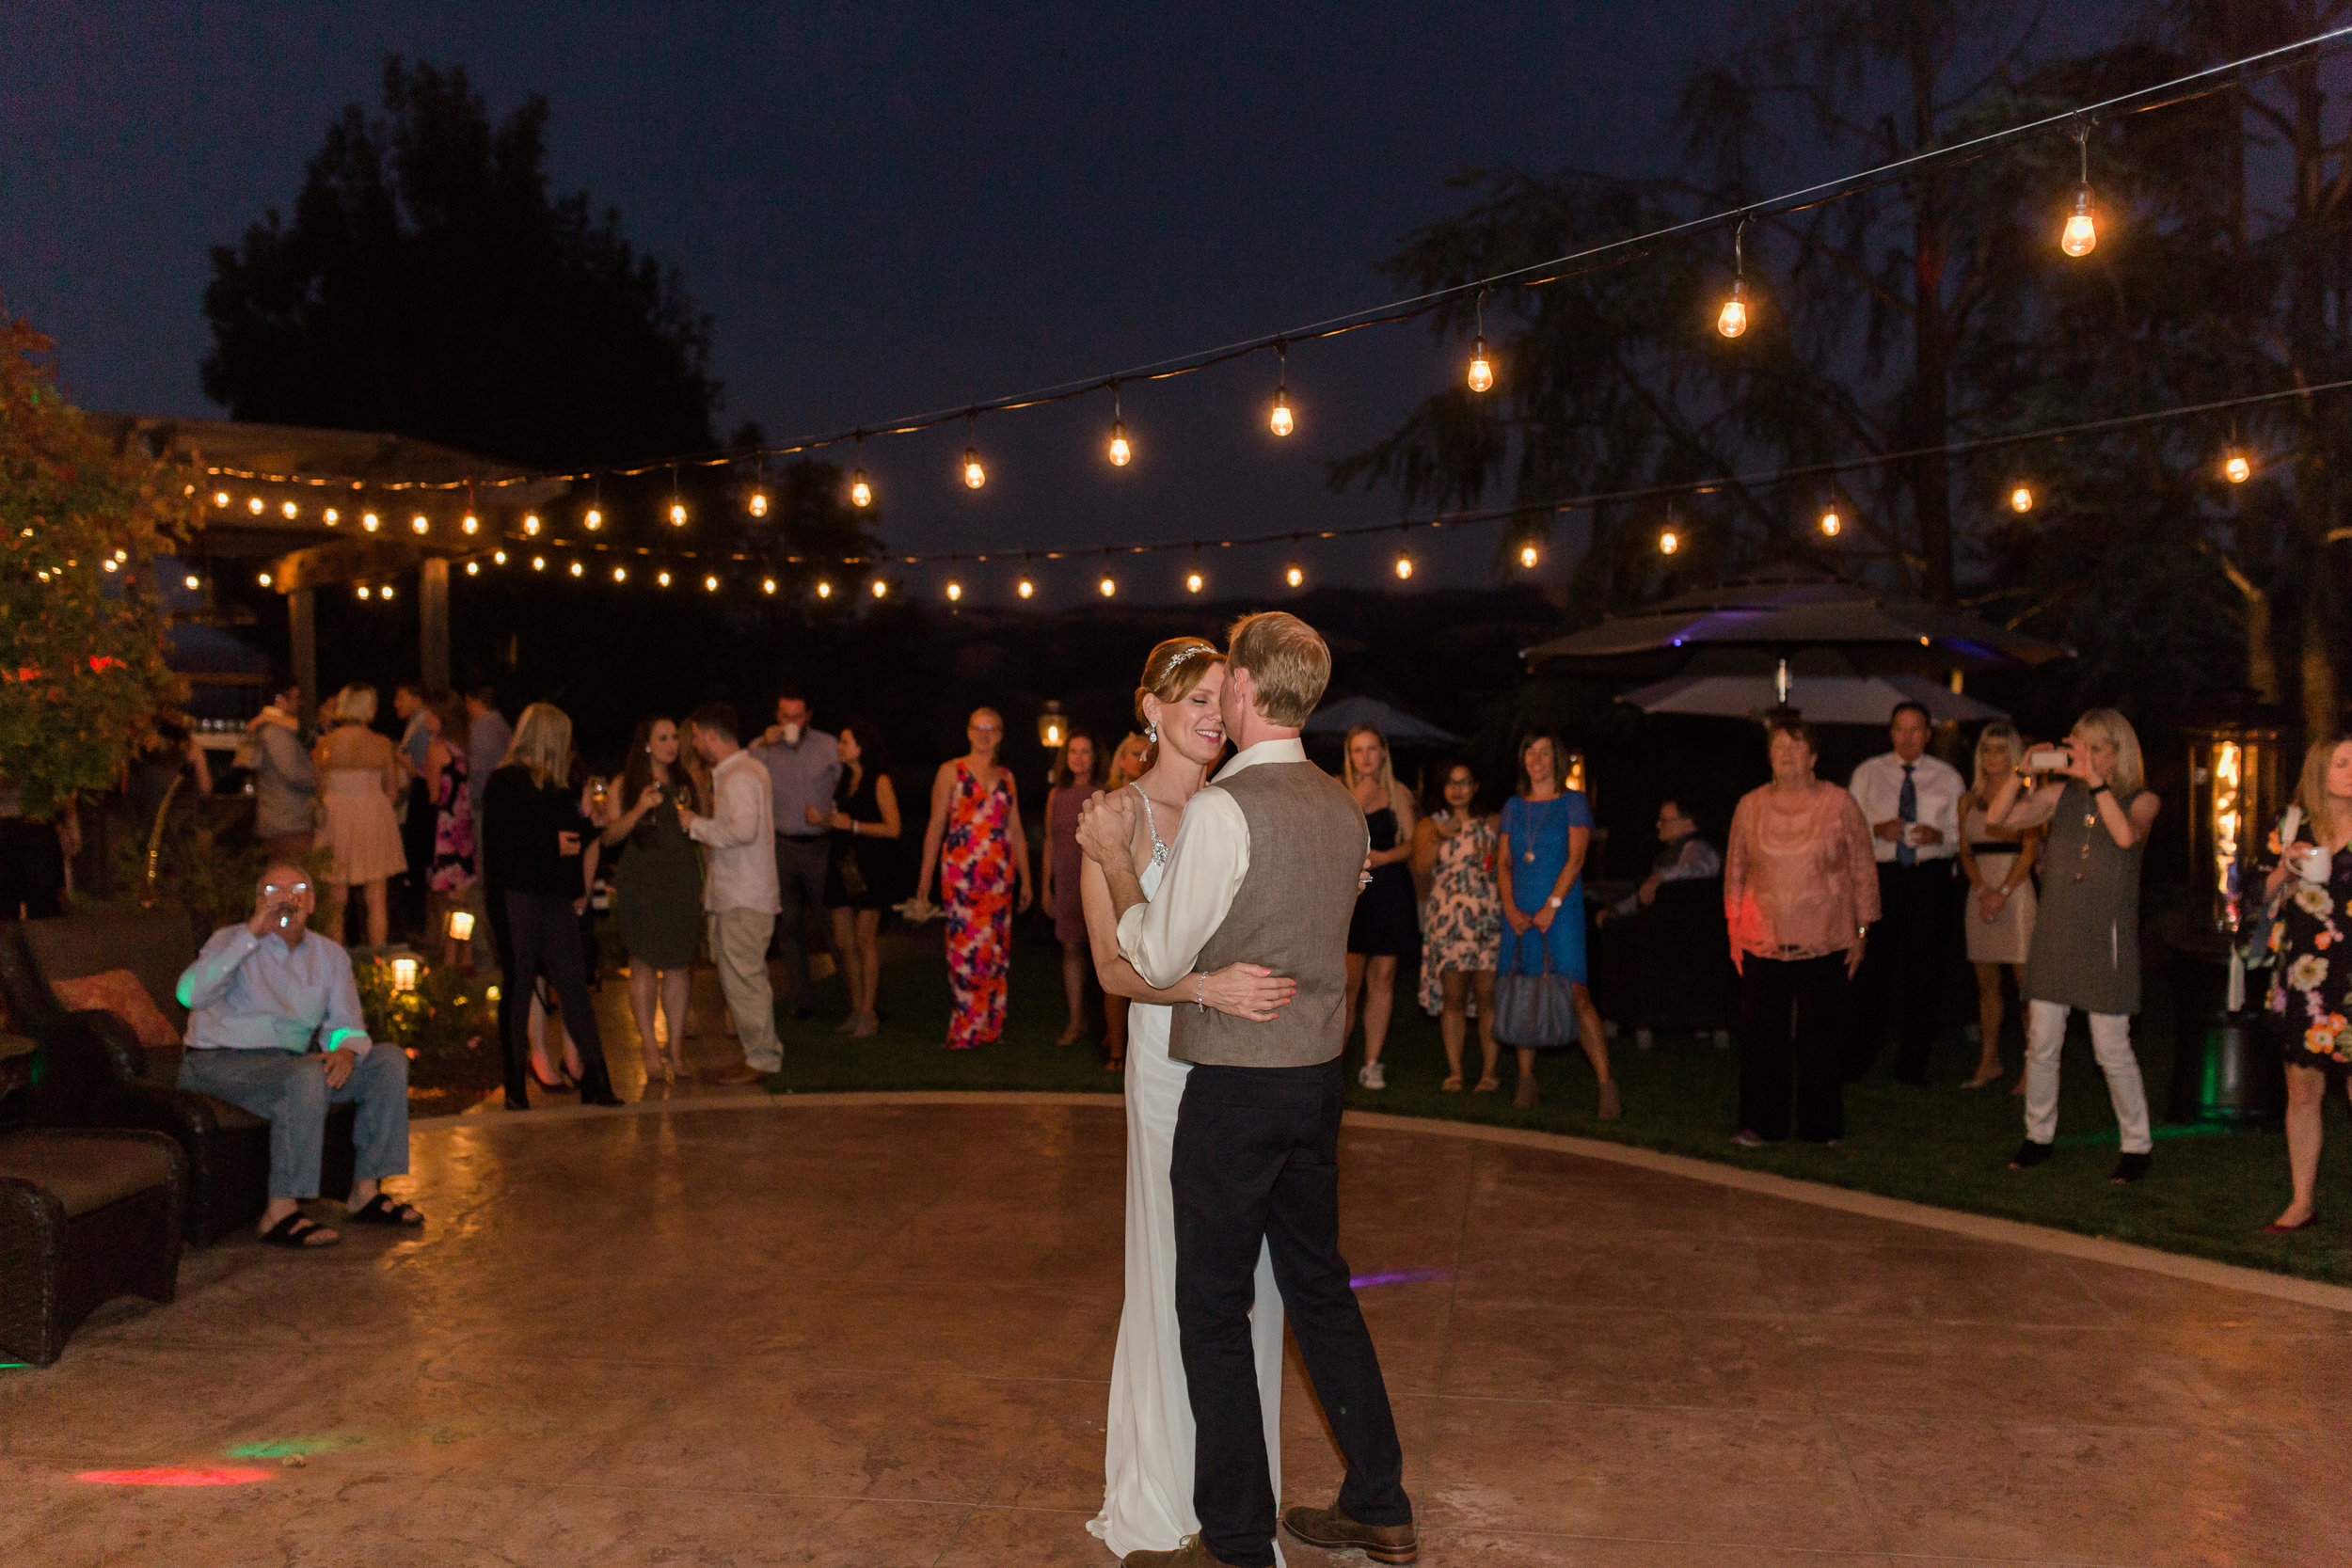 intimate-backyard-wedding-sonoma-california-37.jpg